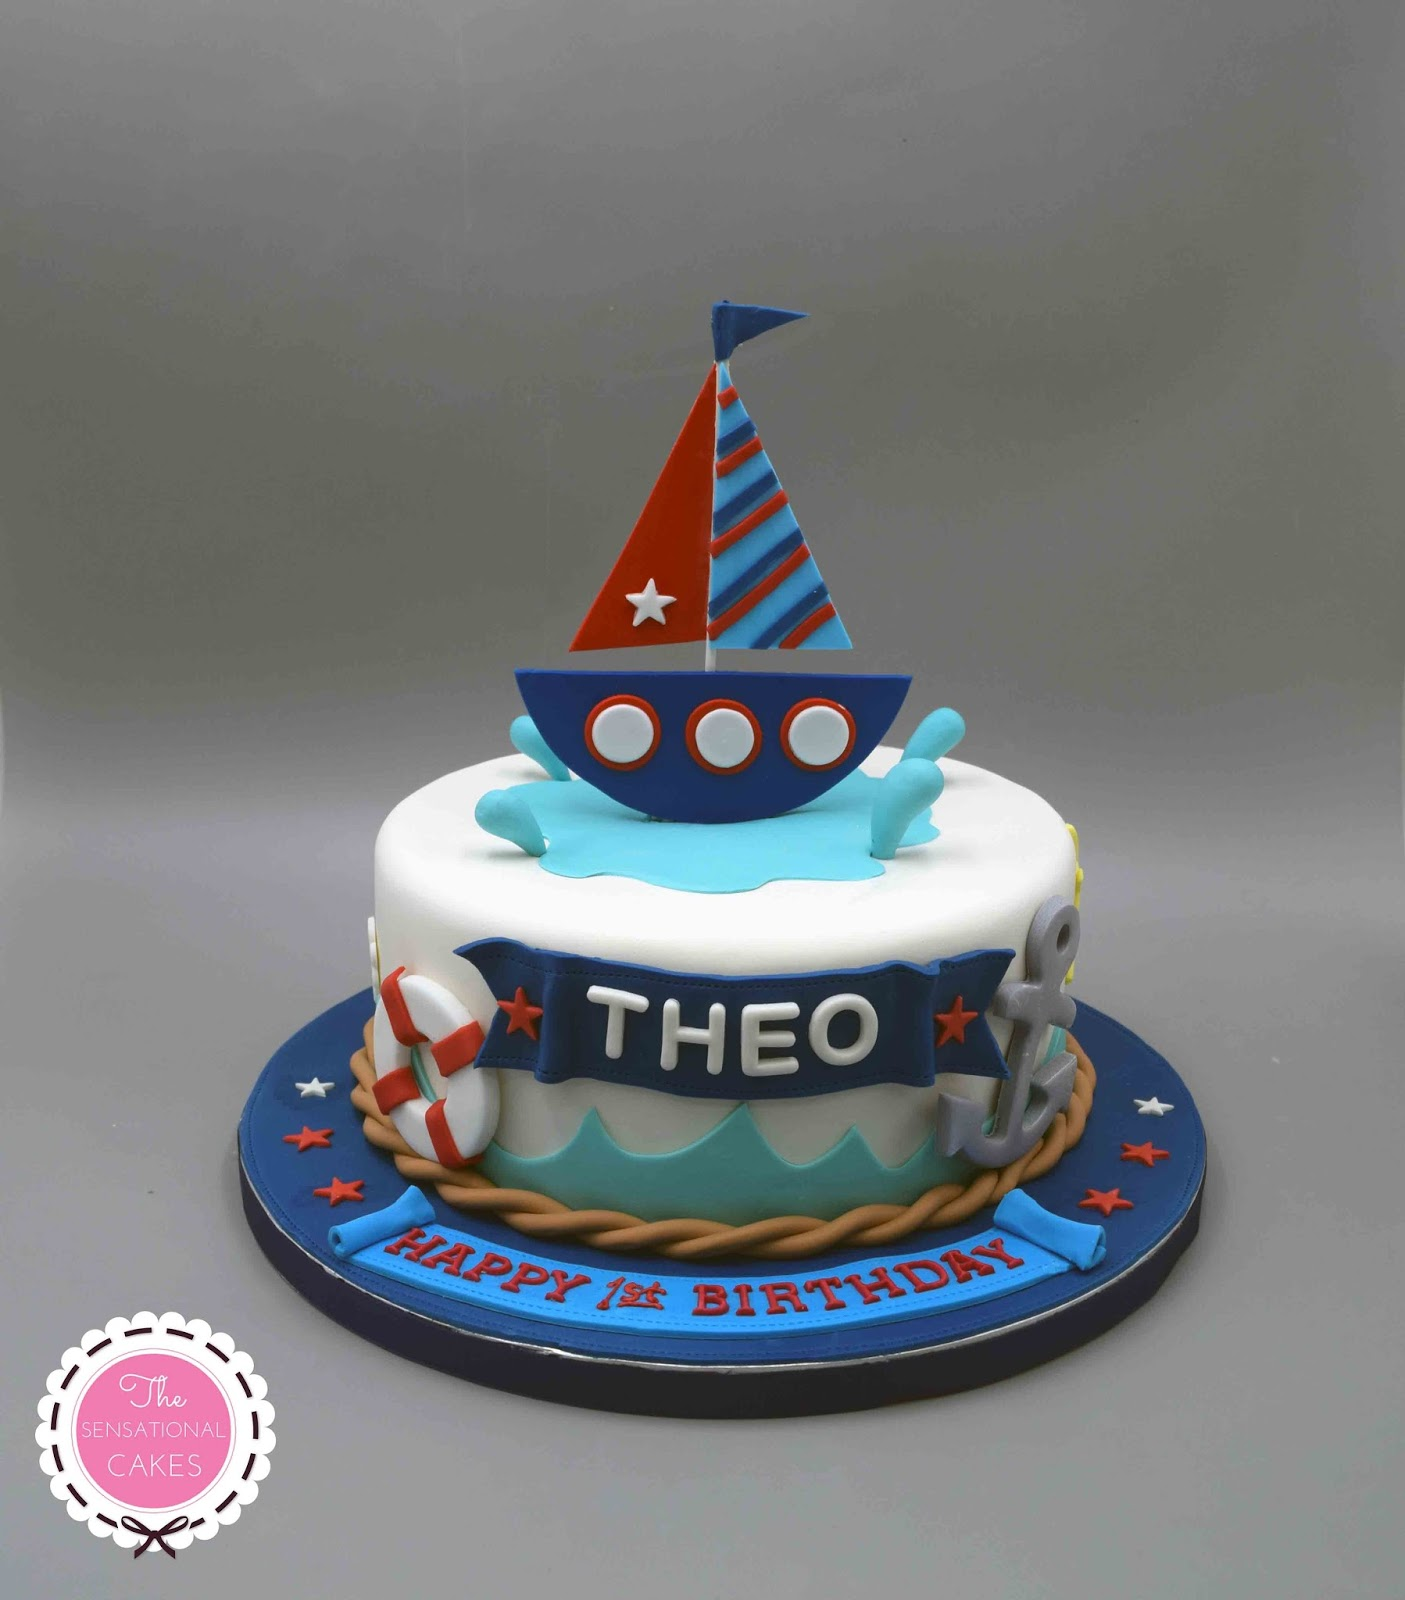 The Sensational Cakes Sailor Theme 3d Concept Birthday Cake Singapore